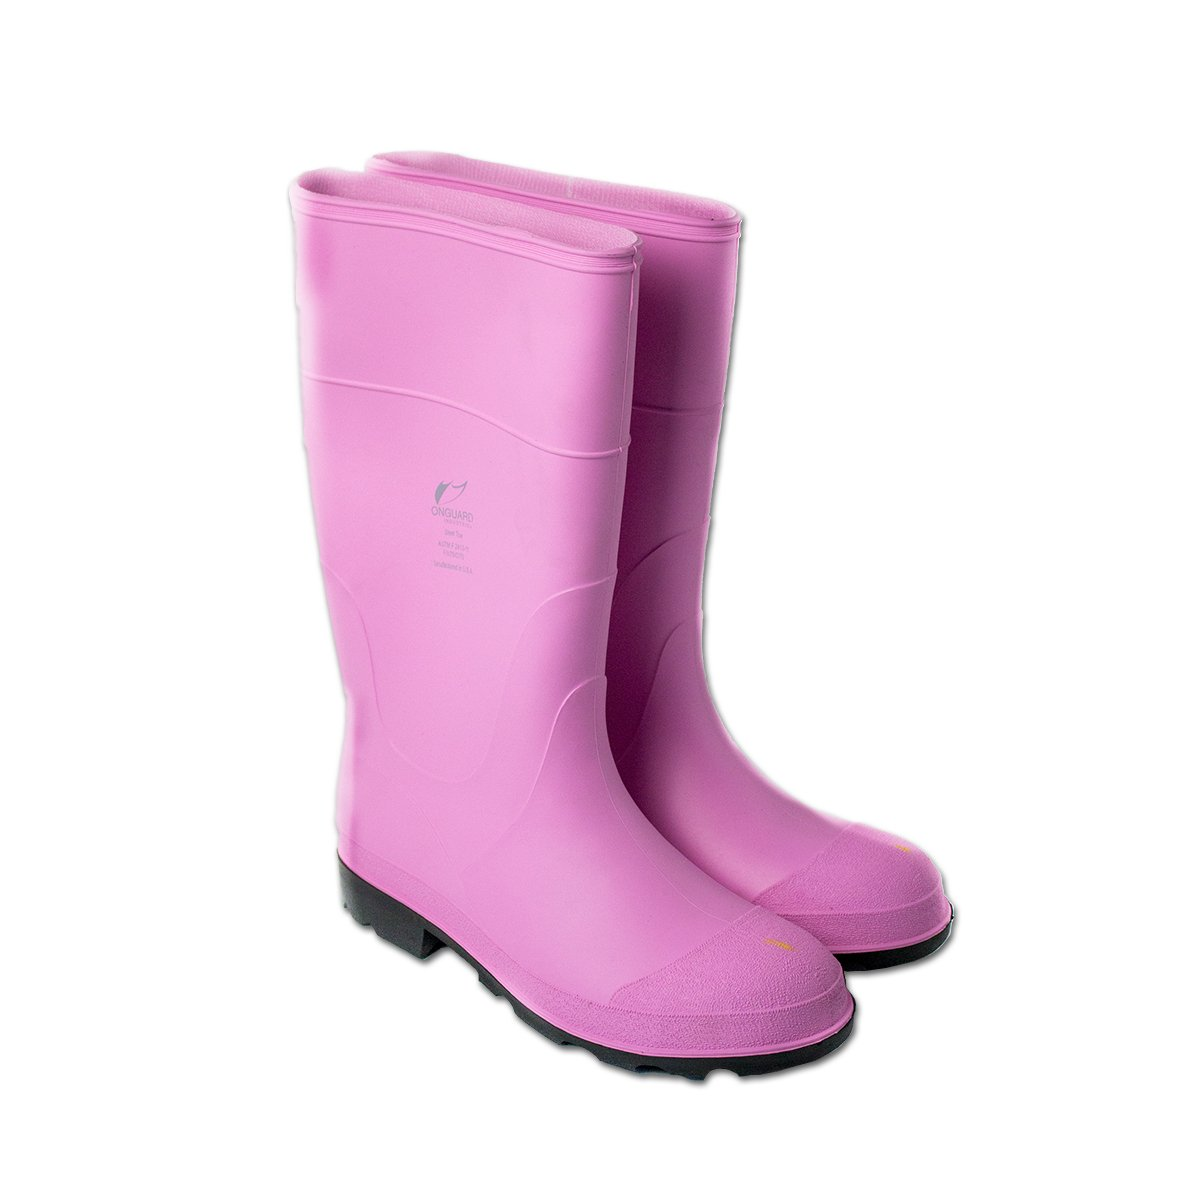 UltraSource 440070-11 Pink Lady Monarch Boots, 14